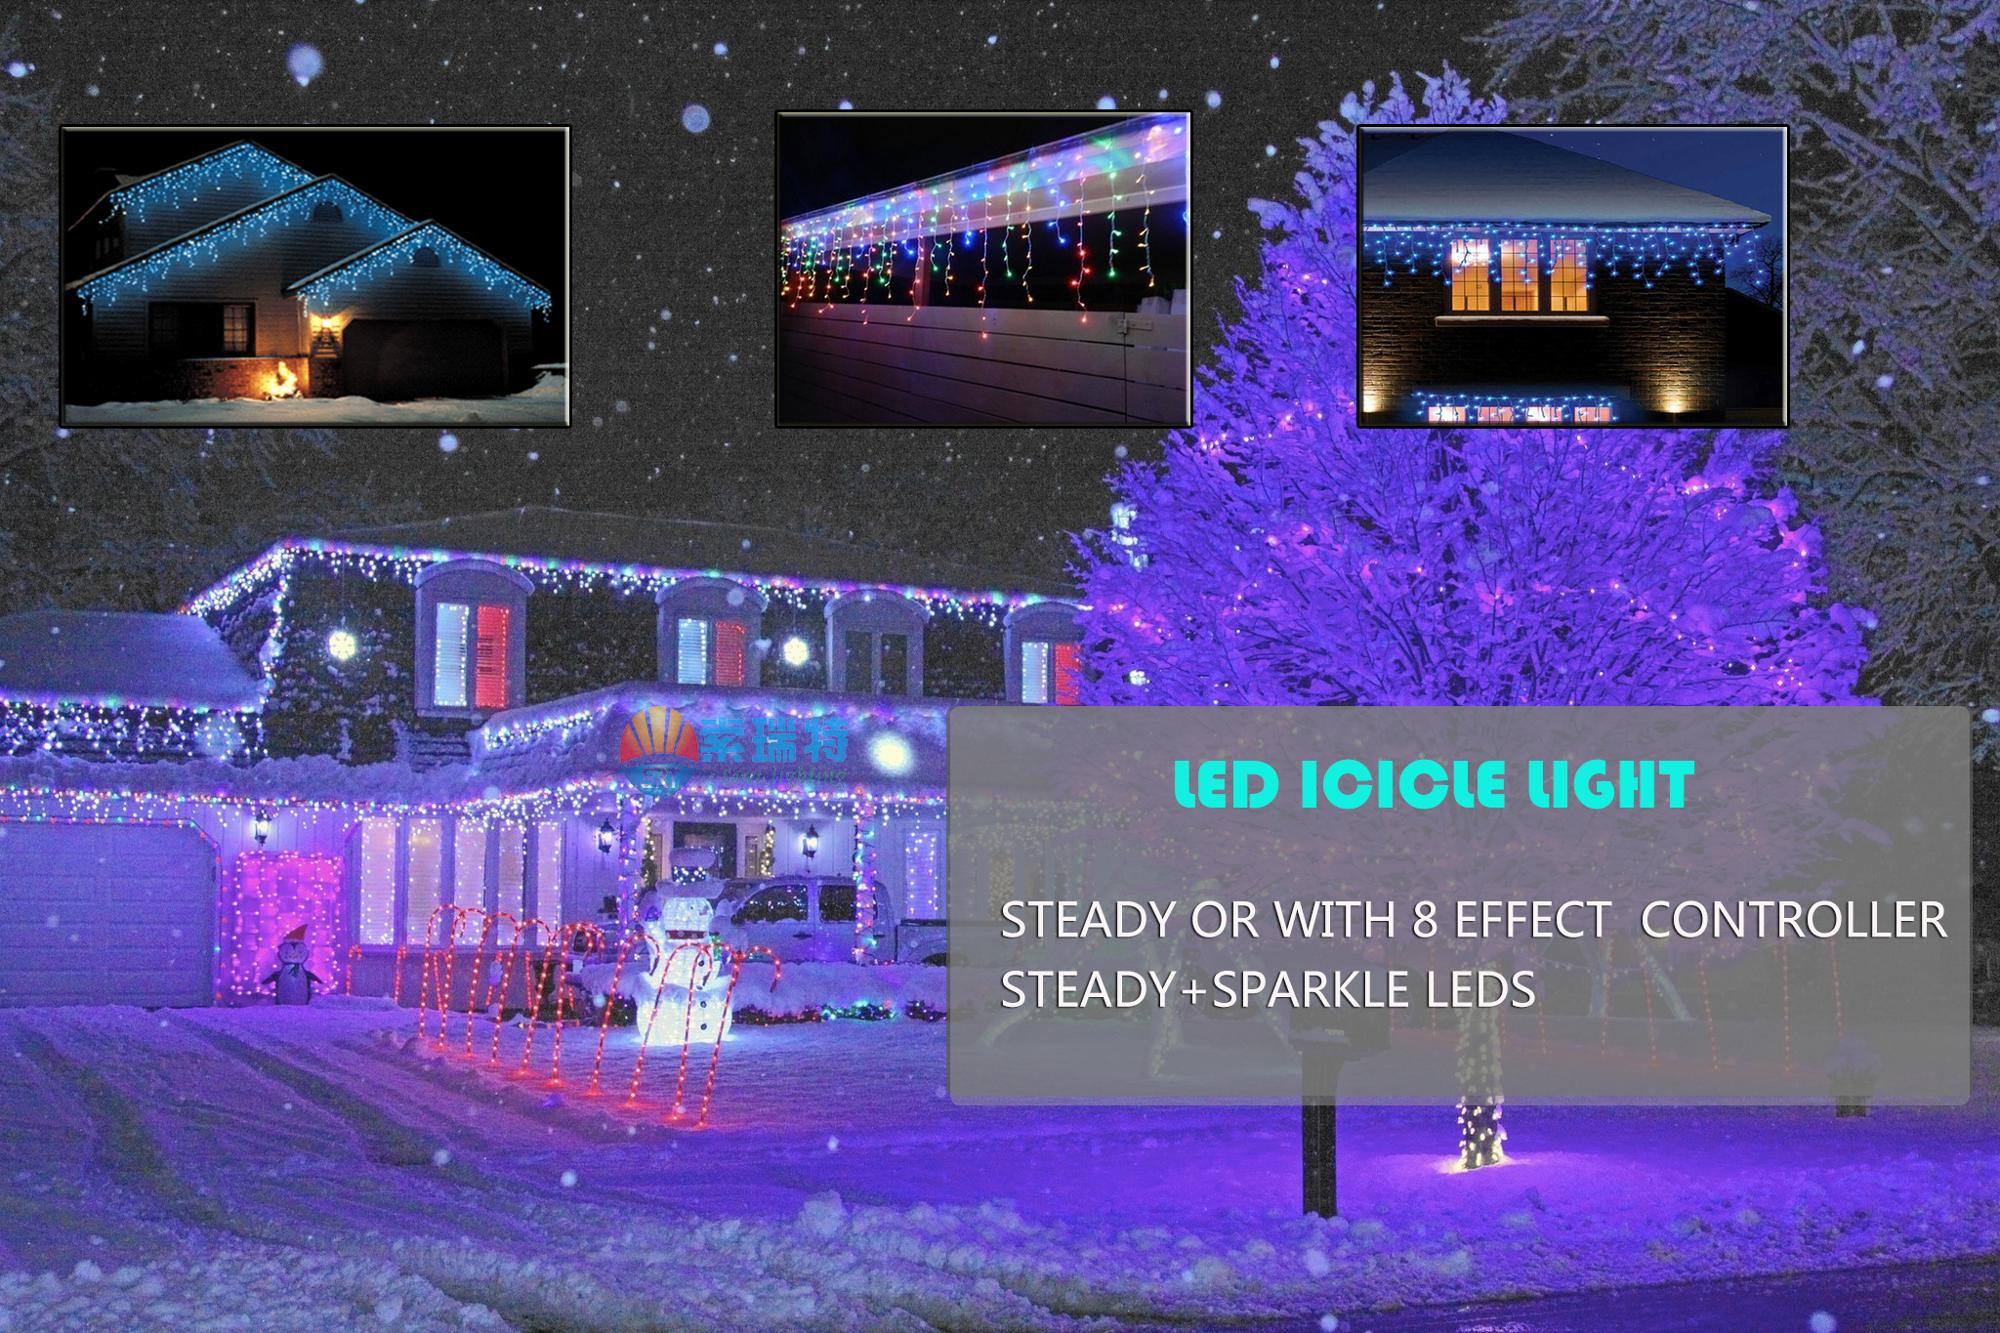 Ijspegel Verlichting Warm Wit Warm Wit Outdoor Decoratie Led Ijspegel Led Fairy Ijspegel Buy Led Ijspegel Licht Kerst Outdoor Led Ijspegel Led Kerst Ijspegel Product On